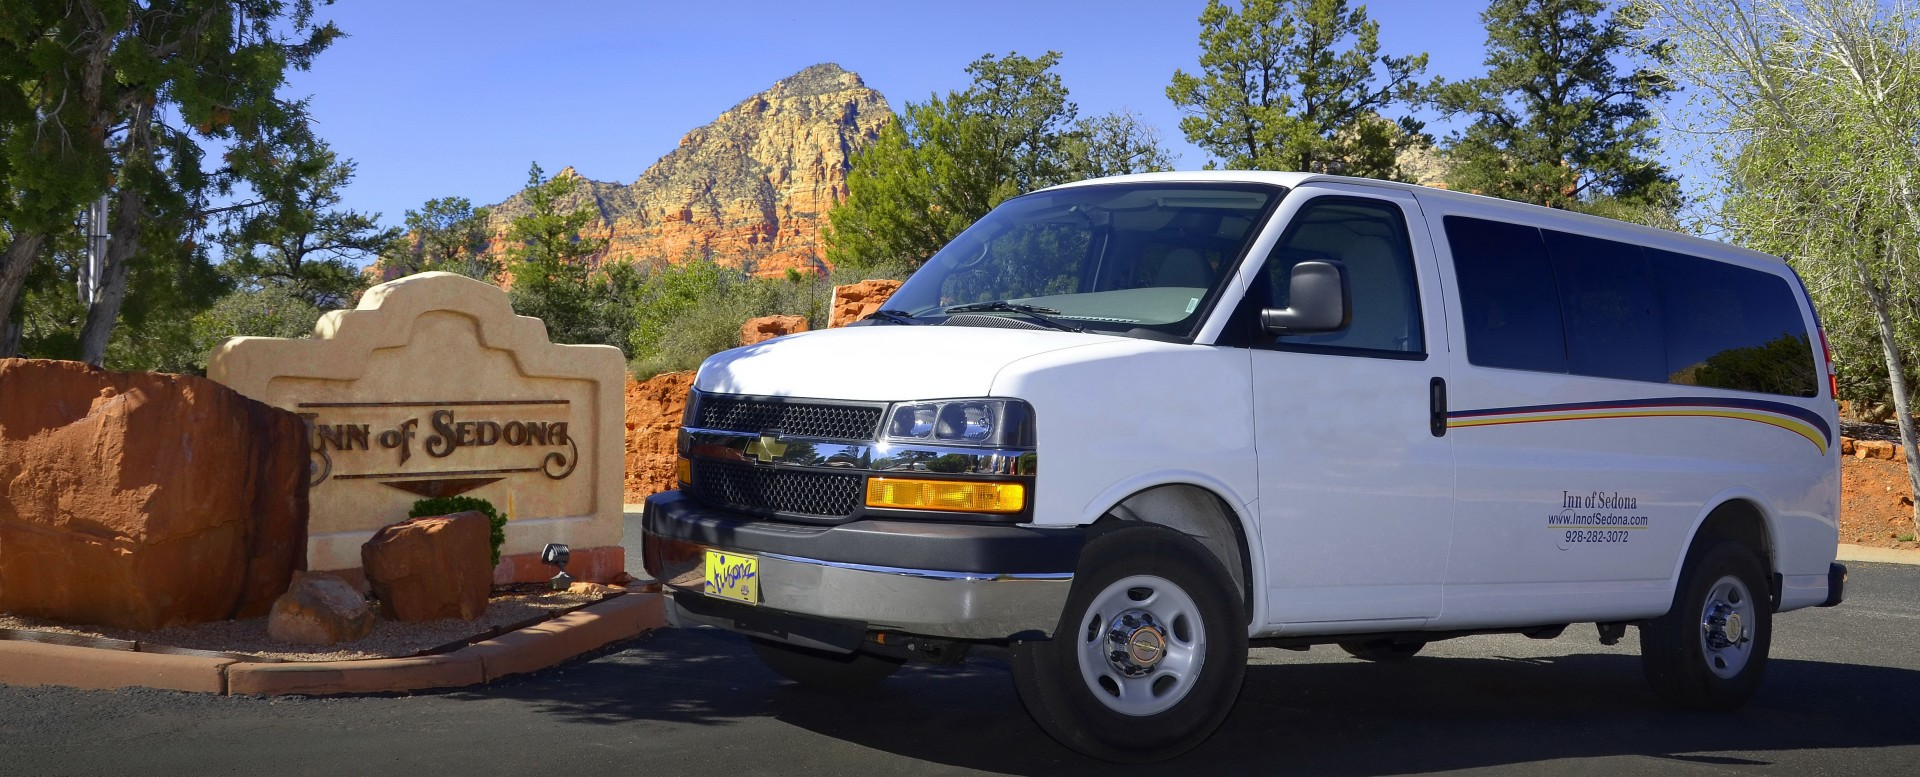 Best Western Plus Inn of Sedona-Shuttle